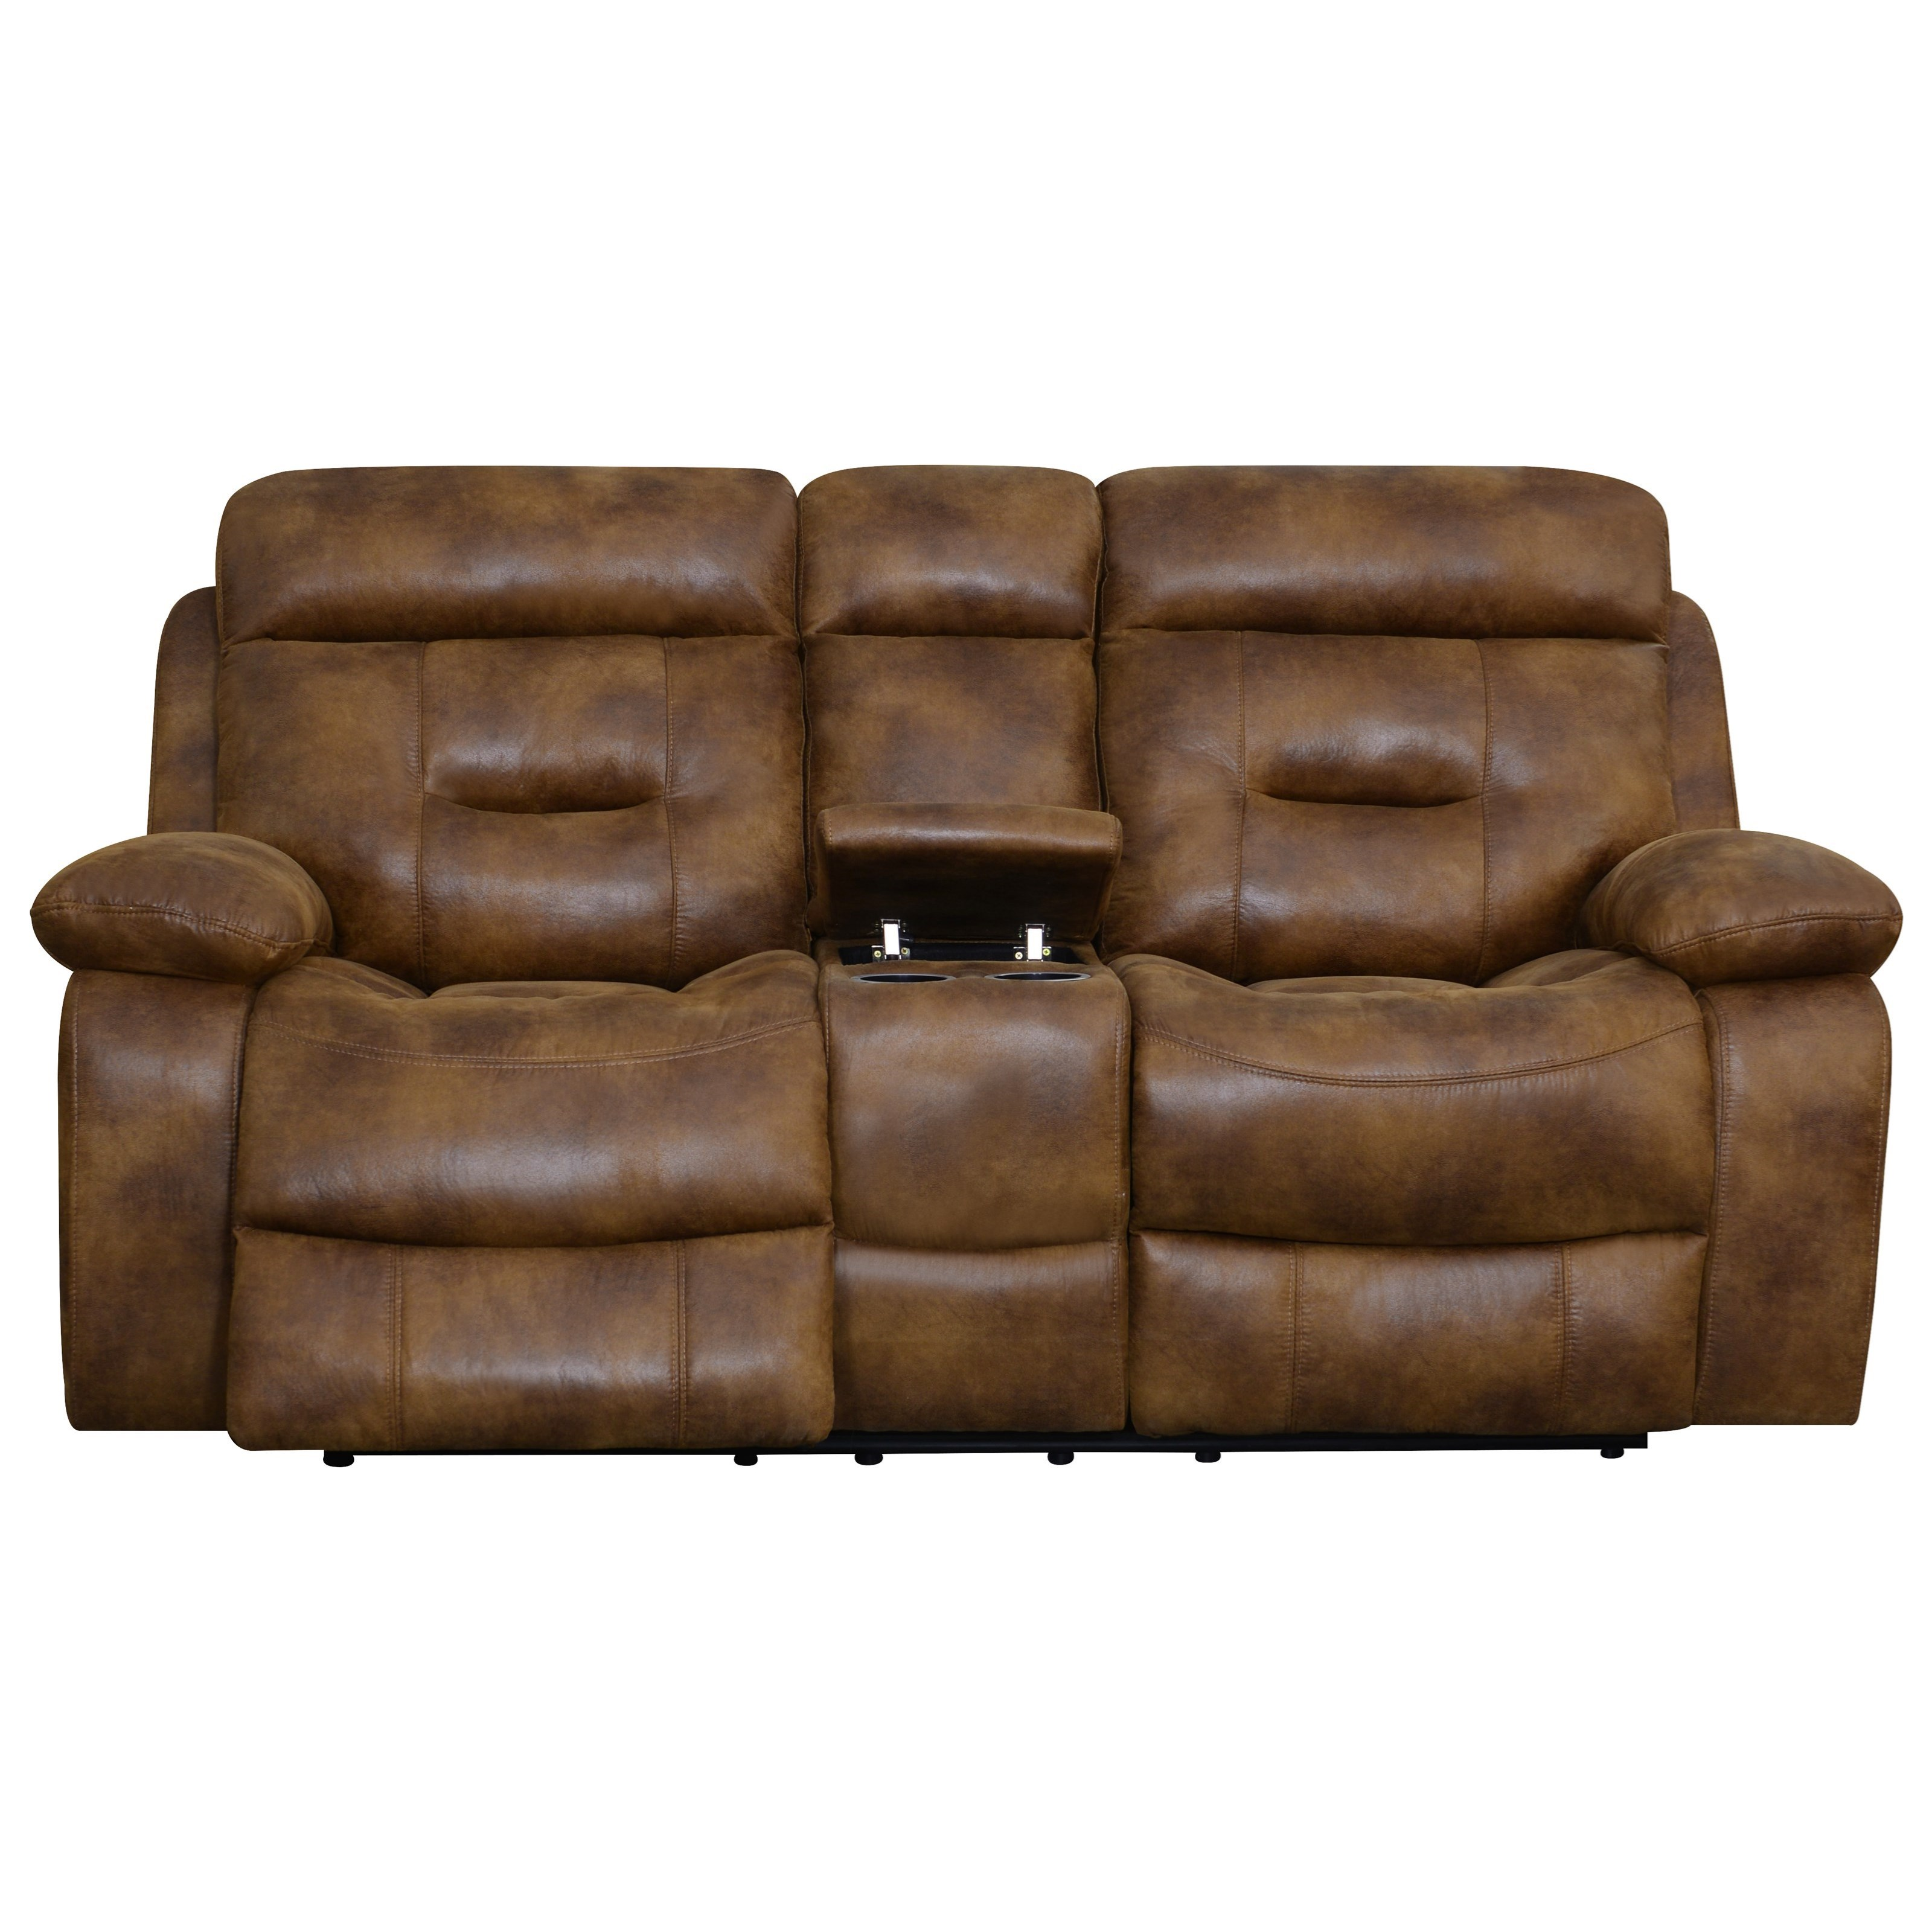 Cano Reclining Loveseat with Storage & Cupholders by Klaussner International at Northeast Factory Direct